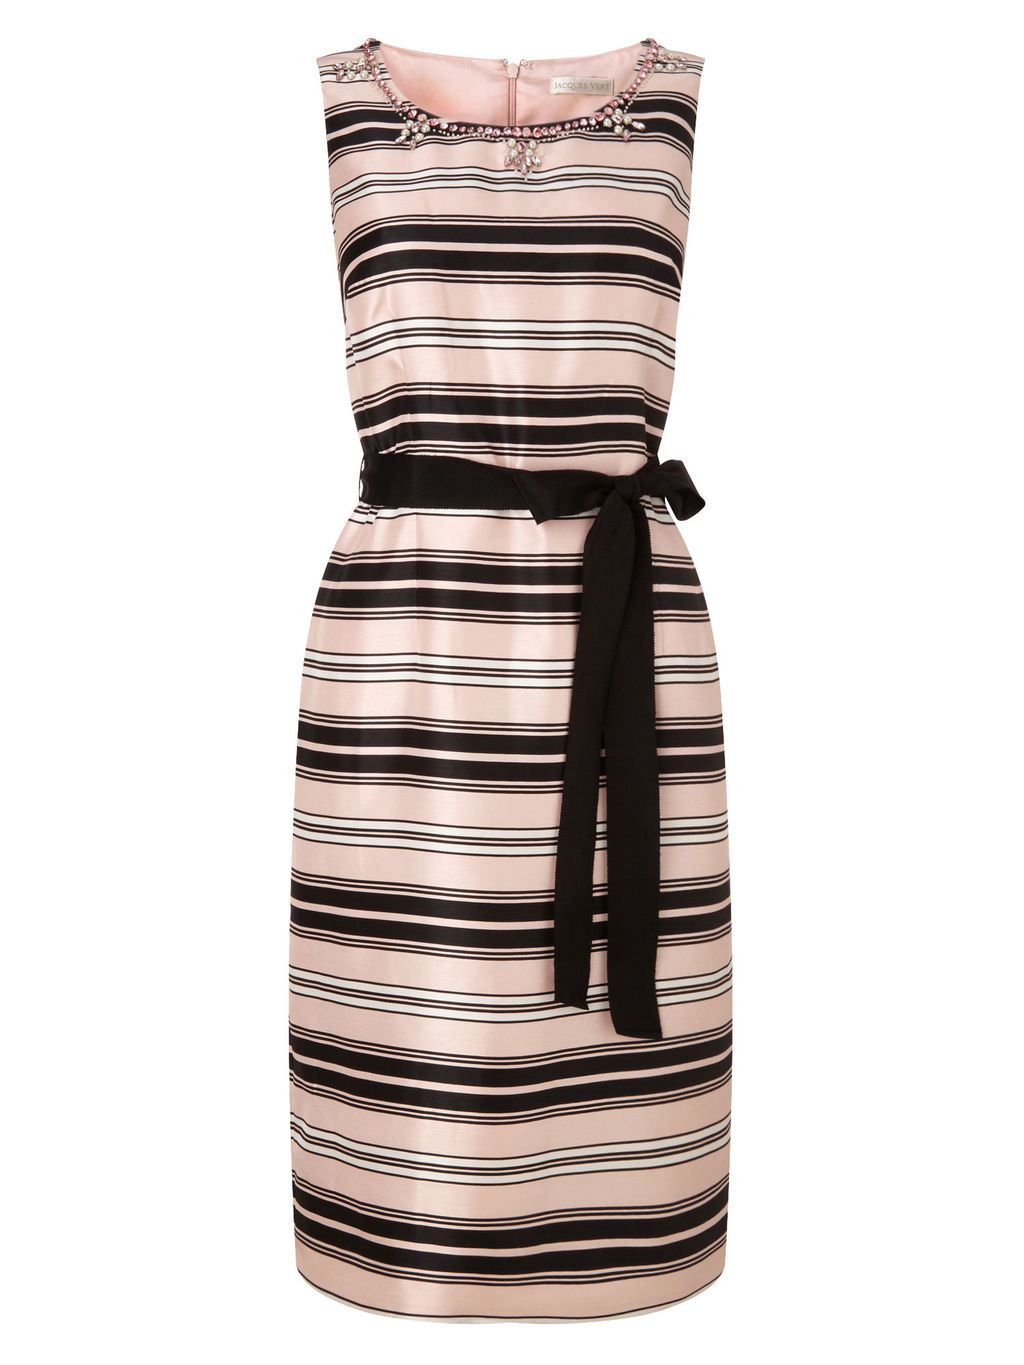 Embellished Stripe Dress, Blossom Pink/Multi - style: shift; neckline: round neck; fit: tailored/fitted; pattern: horizontal stripes; sleeve style: sleeveless; waist detail: belted waist/tie at waist/drawstring; predominant colour: stone; secondary colour: black; occasions: evening, occasion; length: just above the knee; fibres: polyester/polyamide - 100%; sleeve length: sleeveless; texture group: structured shiny - satin/tafetta/silk etc.; pattern type: fabric; pattern size: light/subtle; season: s/s 2016